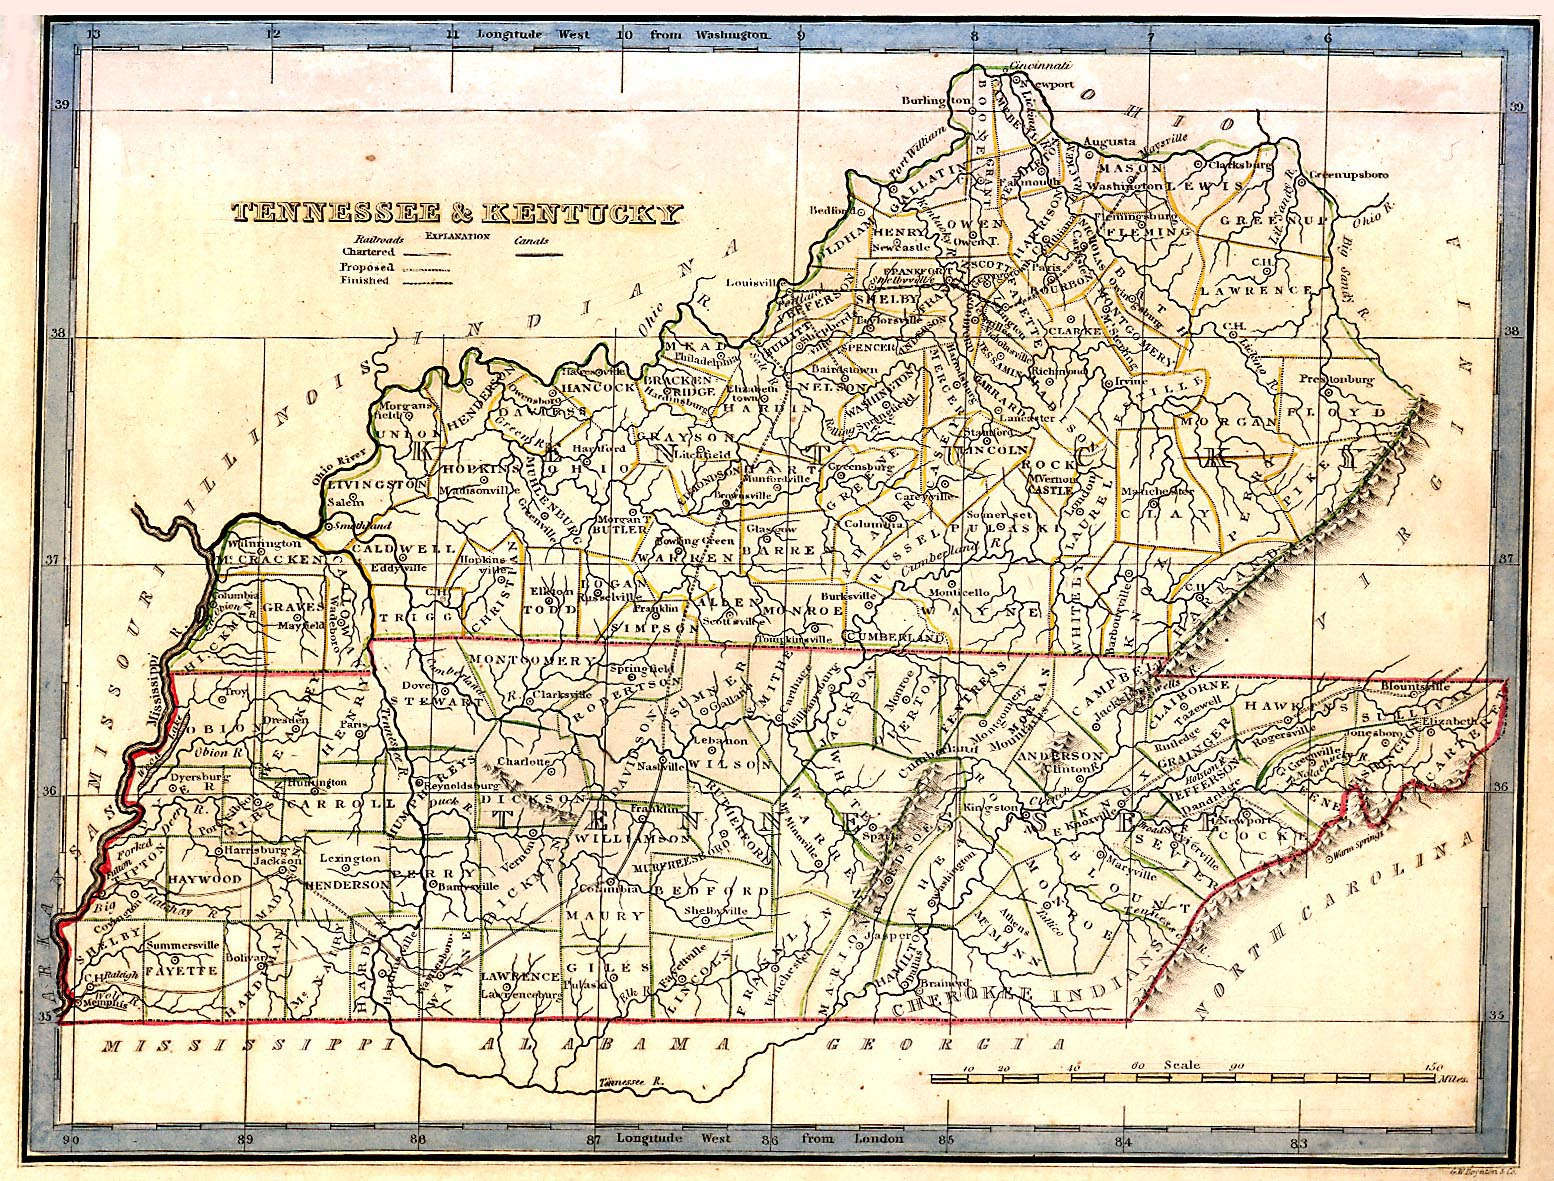 Tennessee Maps Tennessee Digital Map Library Table Of Contents - Tennessee waterways map